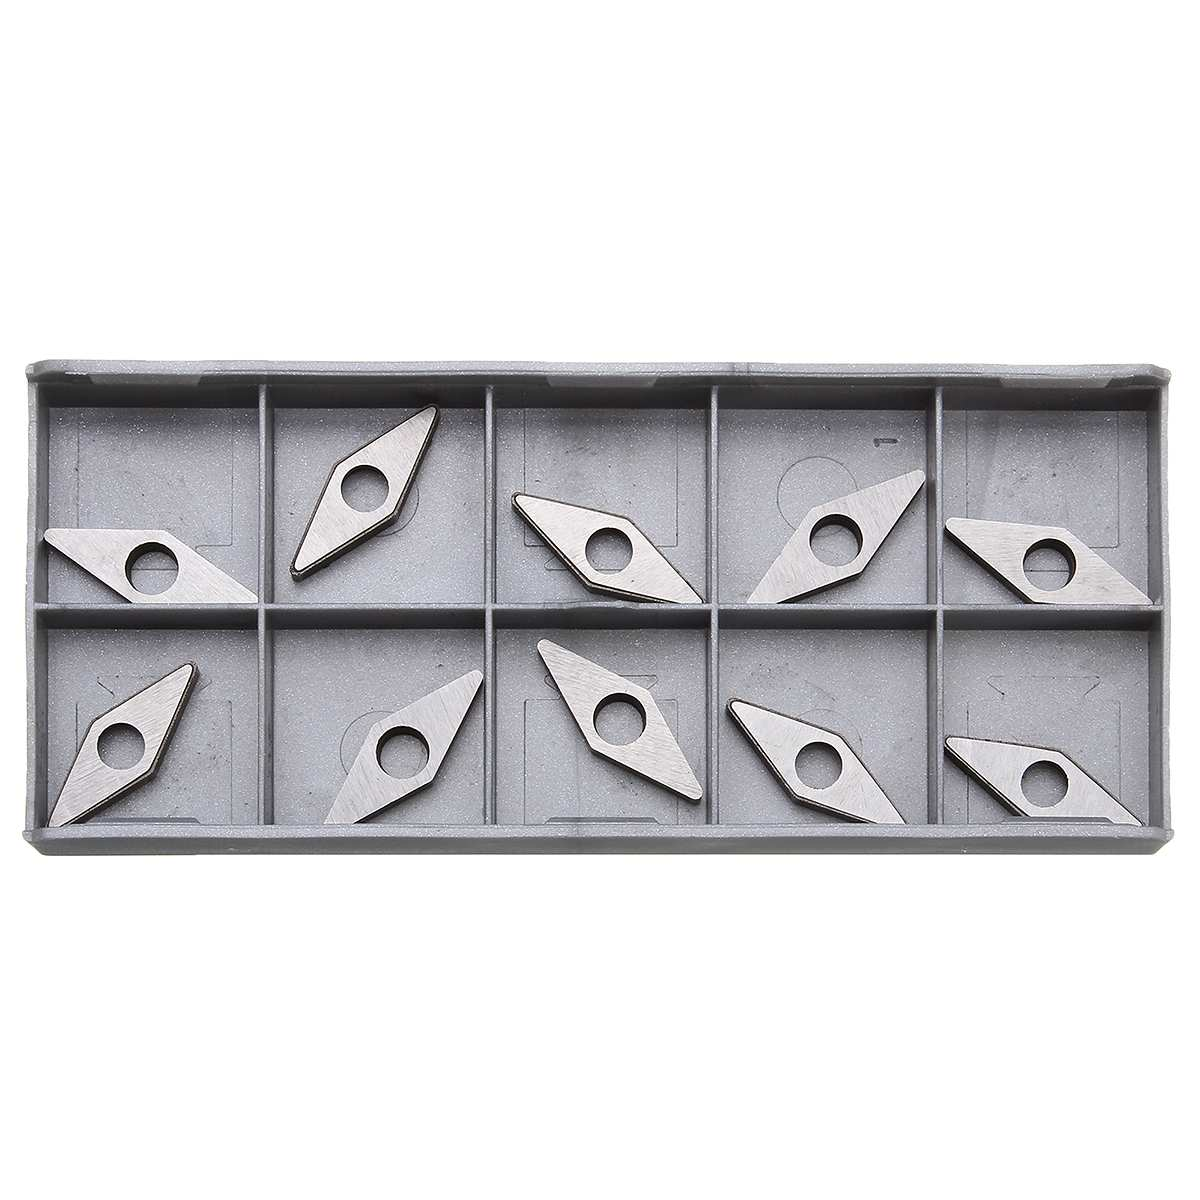 10pcs SV1603 Carbide Insert Shim Seats For Tool Holder Kind VNMG160404/08/12/16 Machine Turning Tool Insert